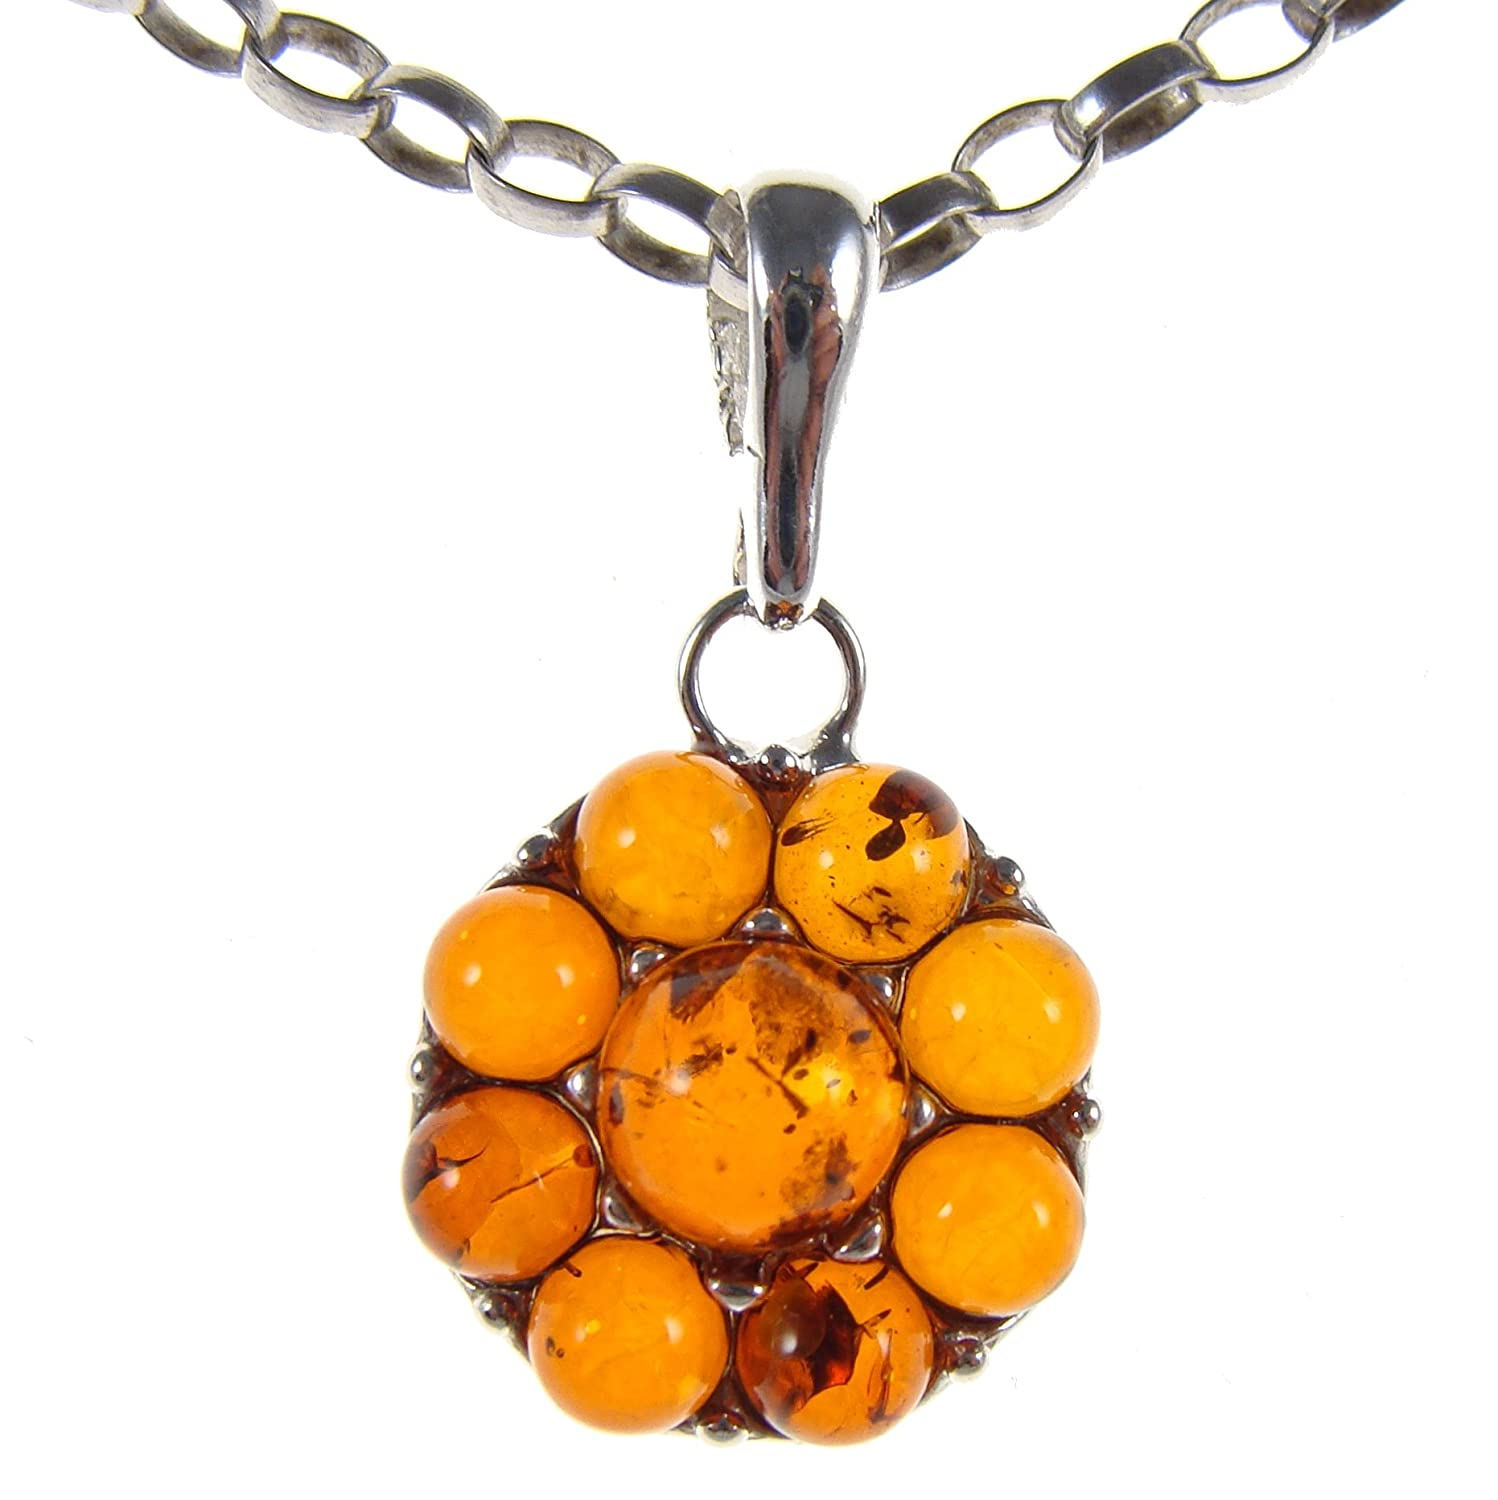 BALTIC AMBER AND STERLING SILVER 925 ALPHABET LETTER O PENDANT NECKLACE 10 12 14 16 18 20 22 24 26 28 30 32 34 36 38 40 1mm ITALIAN SNAKE CHAIN